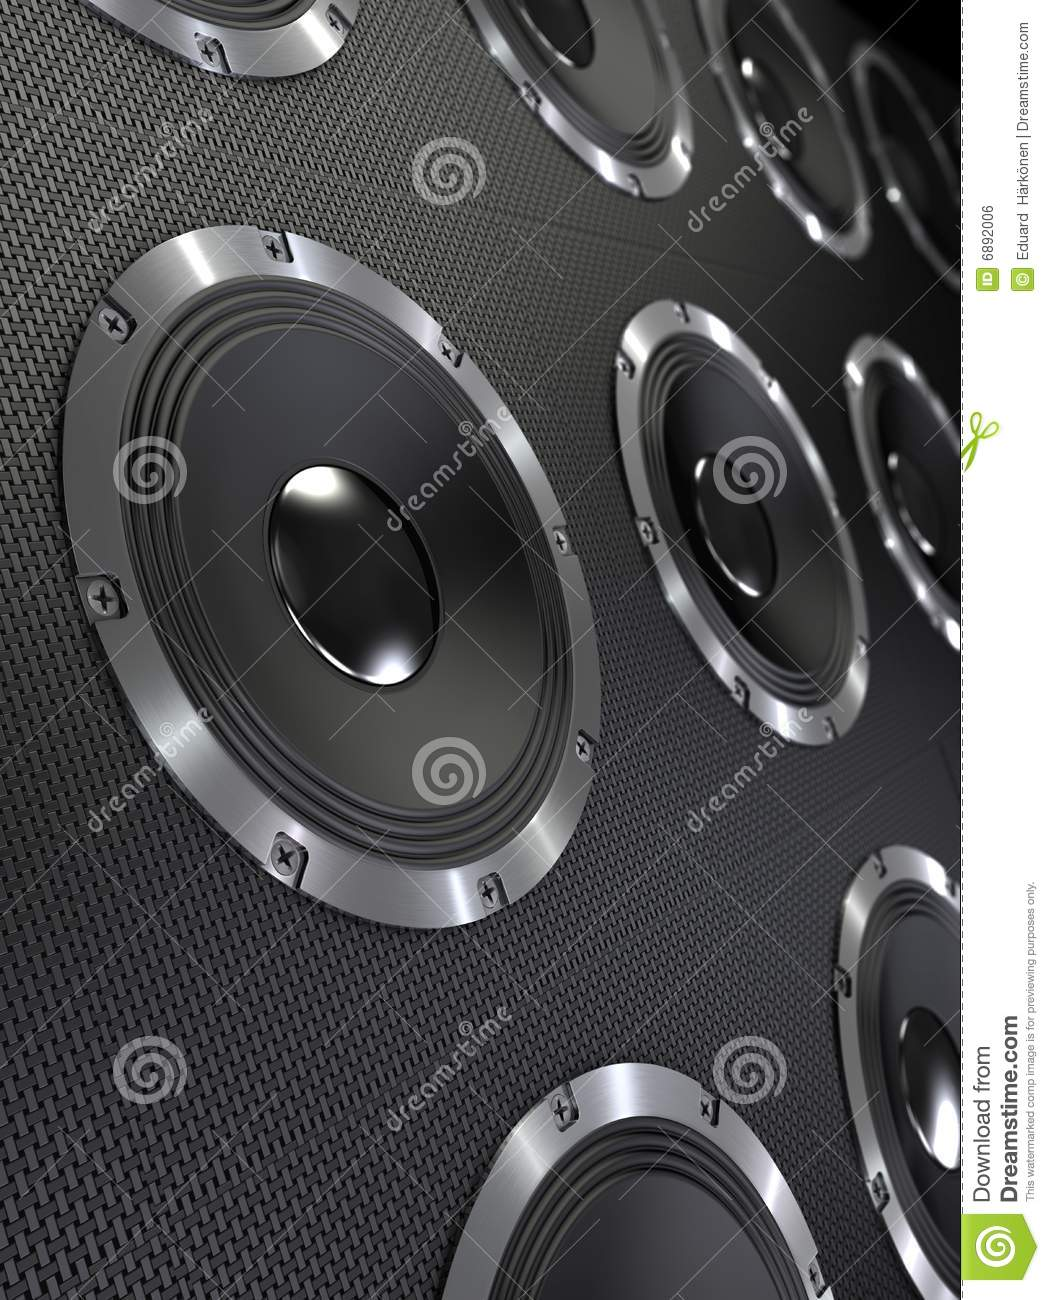 Bass Speakers Background stock illustration. Image of bolt ...